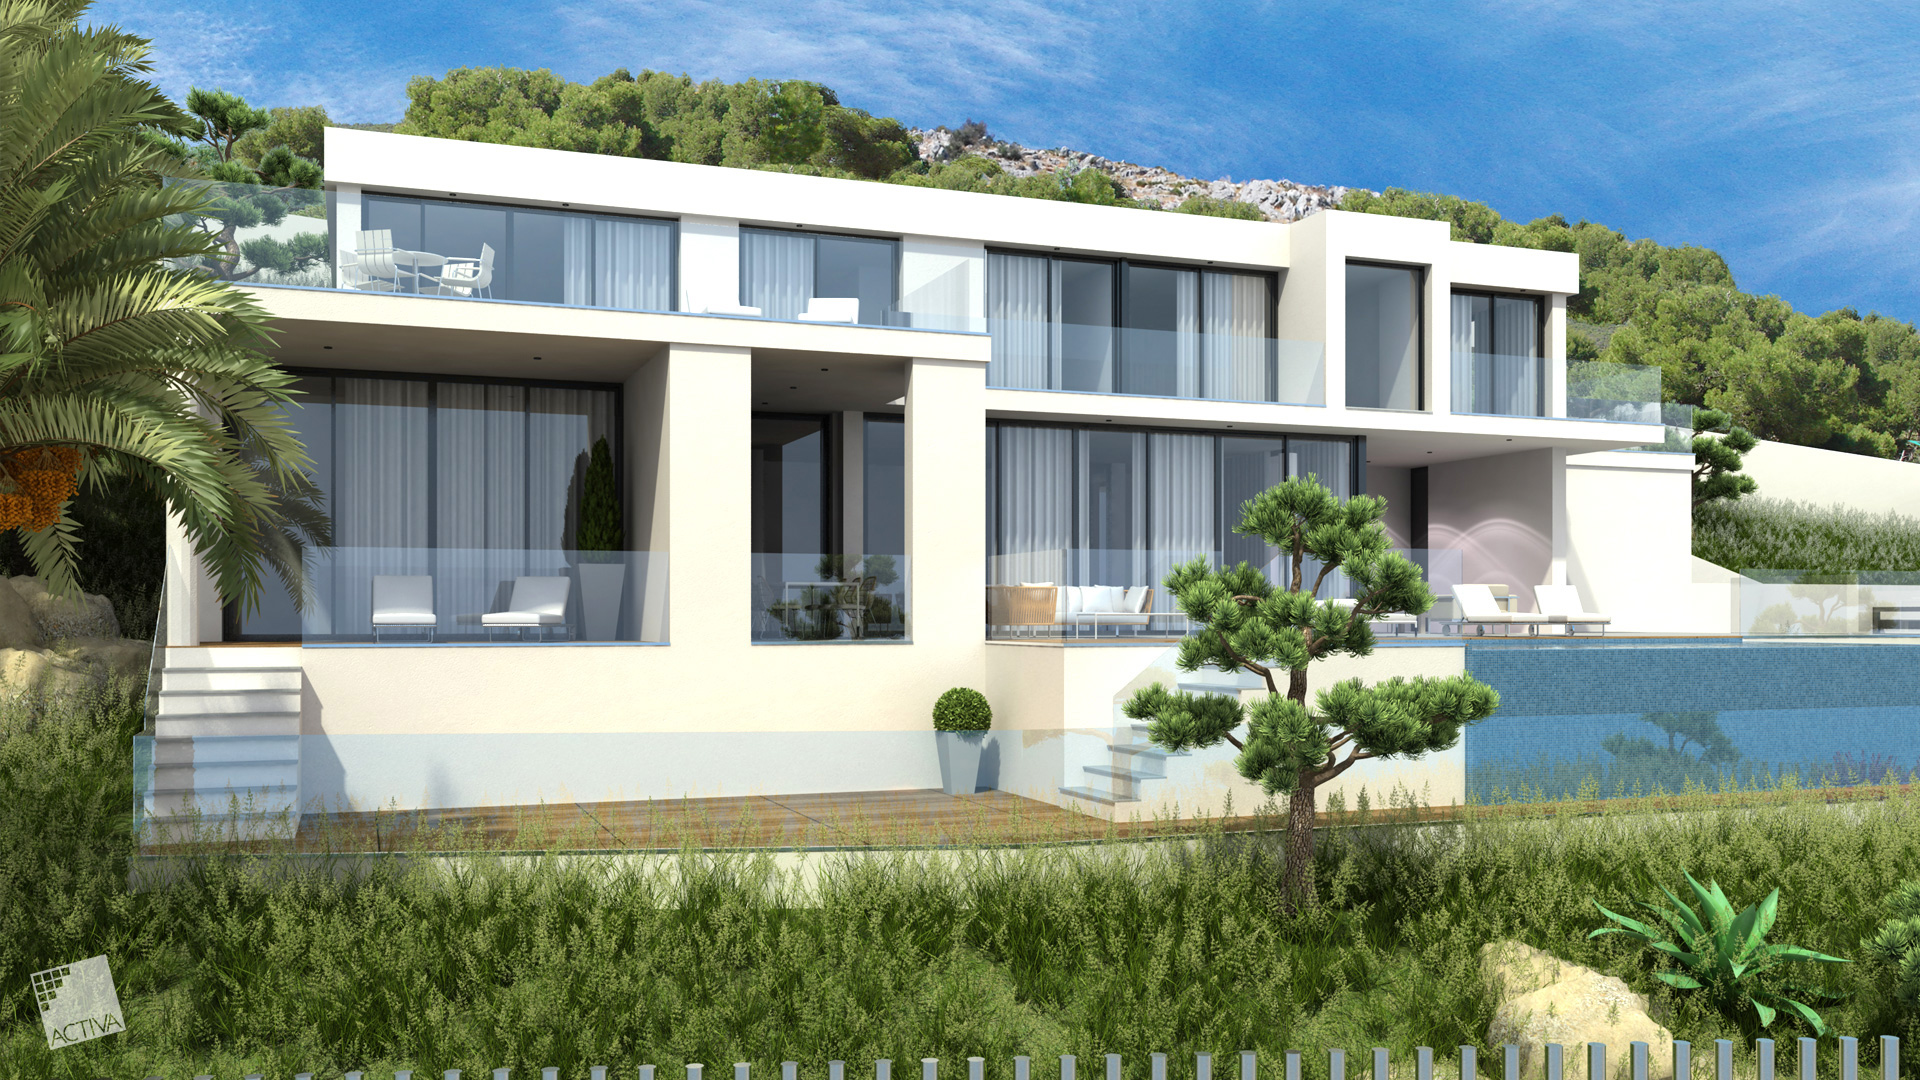 Image Exquisite Luxury Hilltop Villa in Altea 1